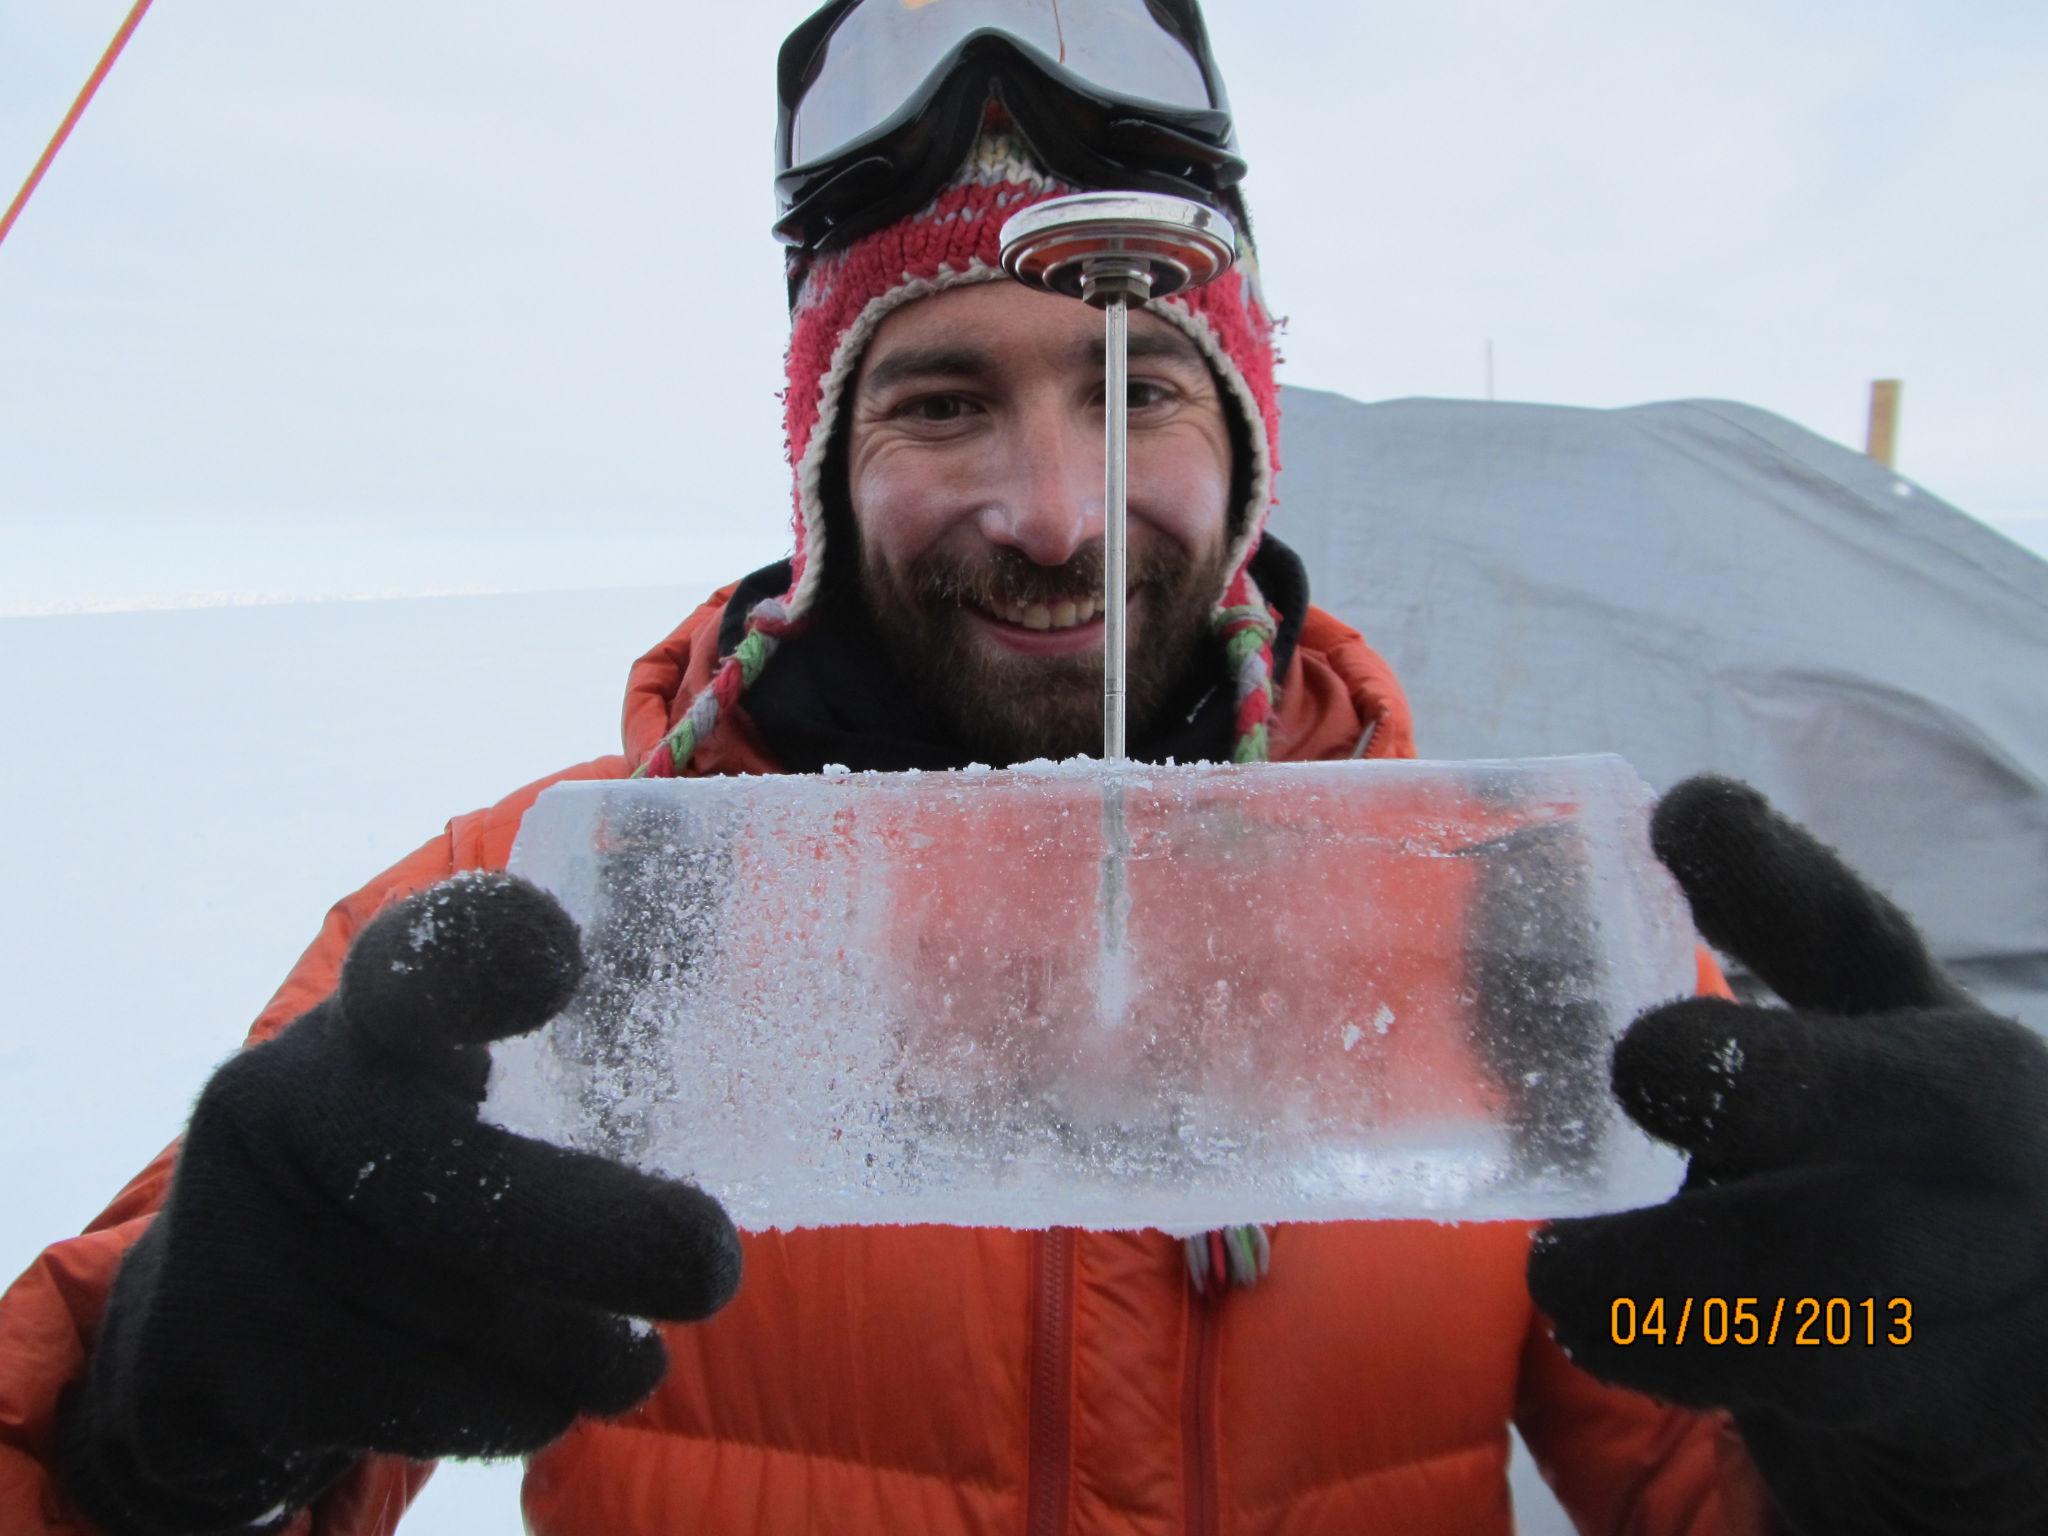 Clément Miège exhibits some very wet ice core harvested from the Greenland Ice Sheet in early spring, 2013. Miège is part of the team led by Rick Forster (University of Utah) investigating a perennial aquifer in the Greenland Ice Sheet - a team PFS supports. Photo: Jay Kyne (IDDO)